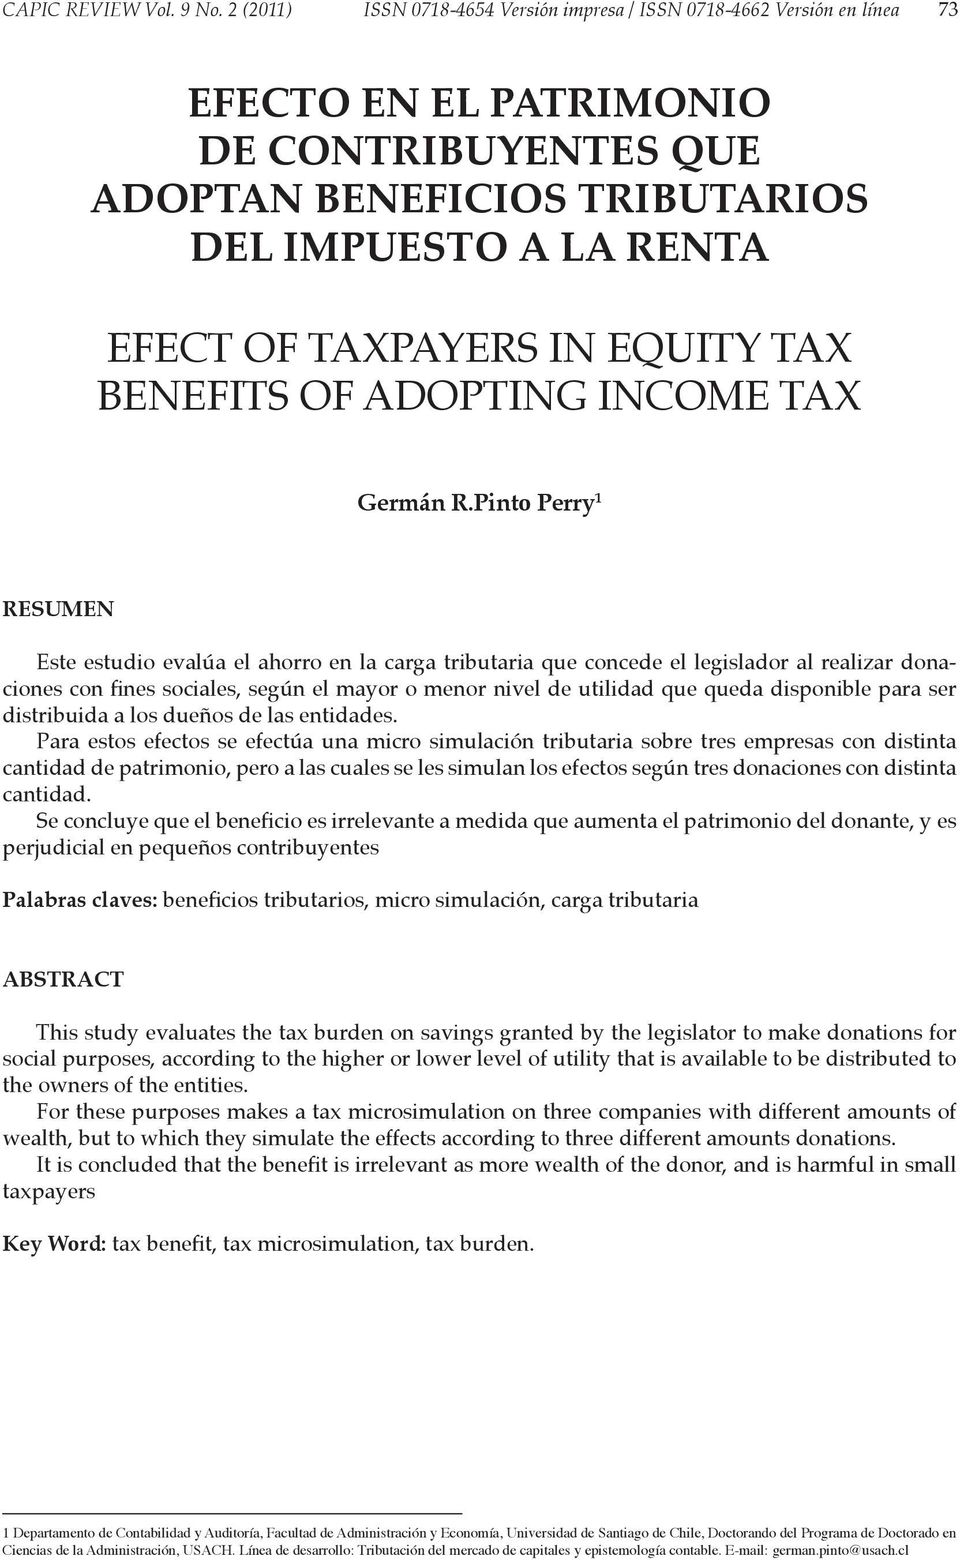 EQUITY TAX BENEFITS OF ADOPTING INCOME TAX Germán R.